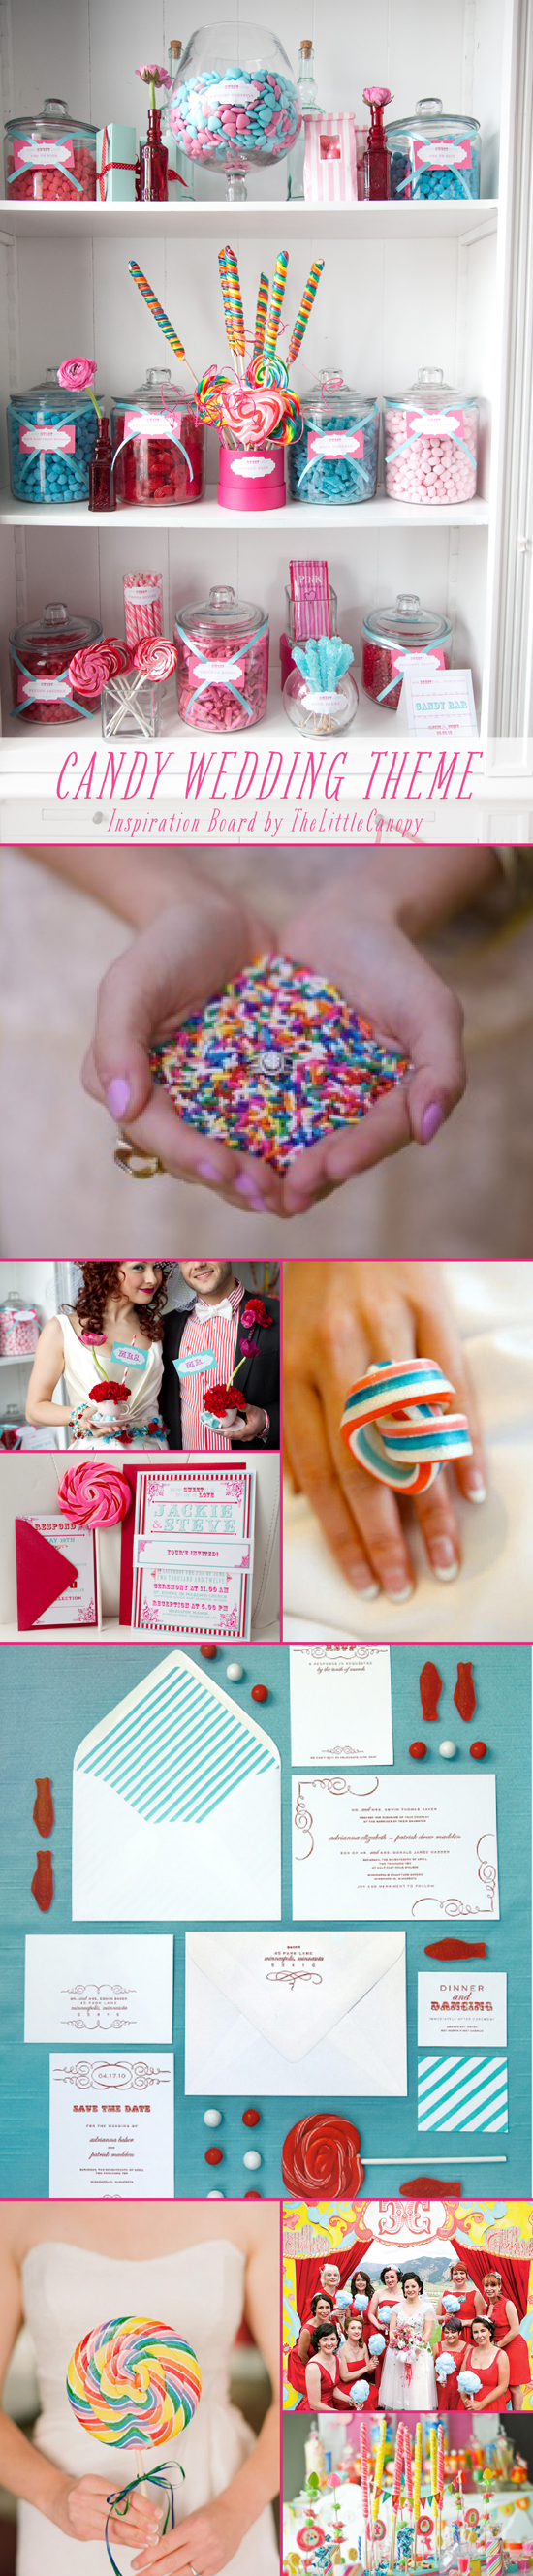 Inspiration Board: Candy Wedding Theme // How fun! If you've got a sweet tooth, brace yourself! So many ideas for pretty candies and sweets to add some flavor and color to your special day! Loving the cotton candy bouquets! Enjoy!